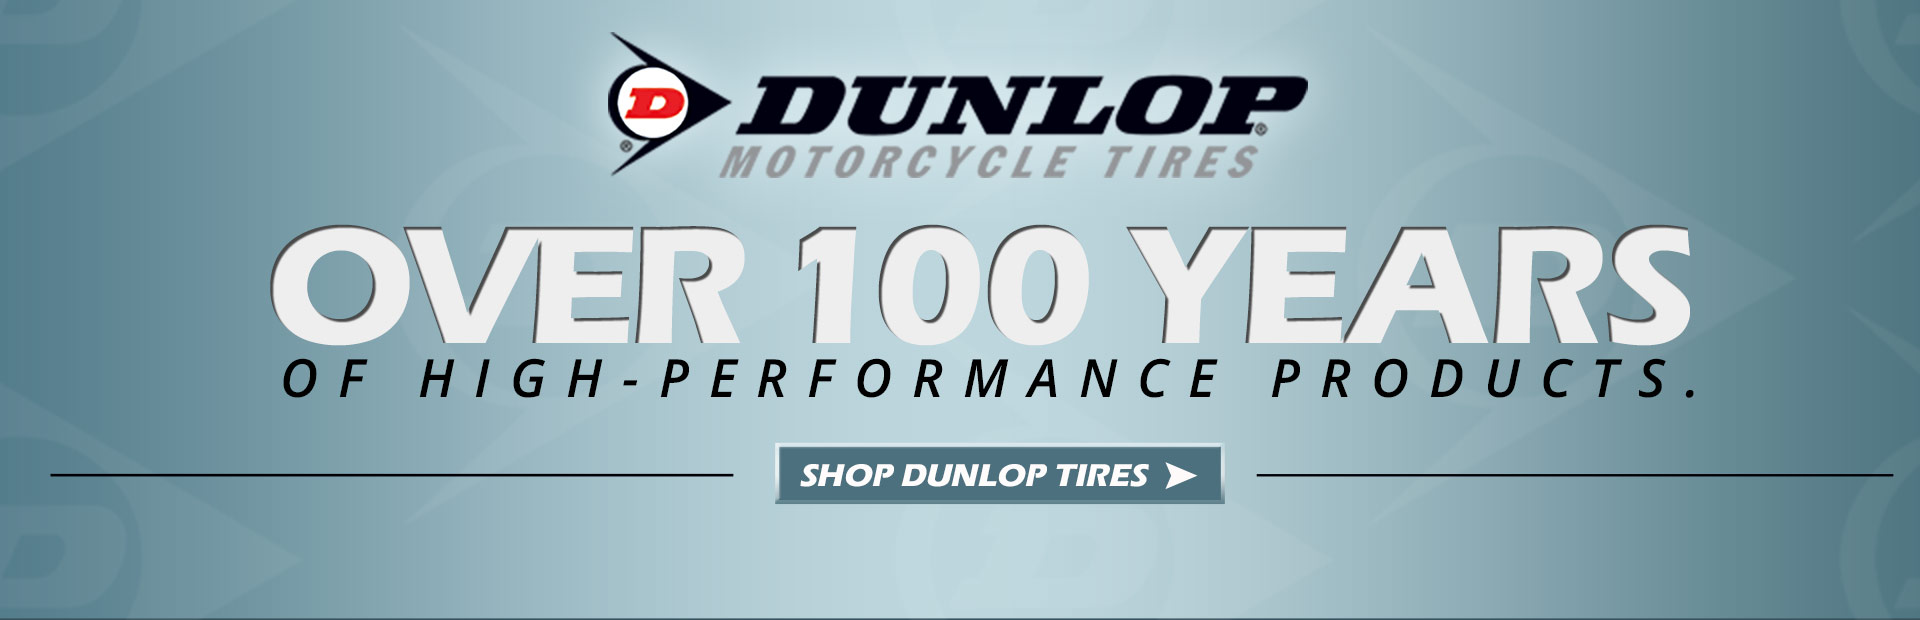 Dunlop has been making high-performance products for over 100 years. Click here to shop for Dunlop tires.